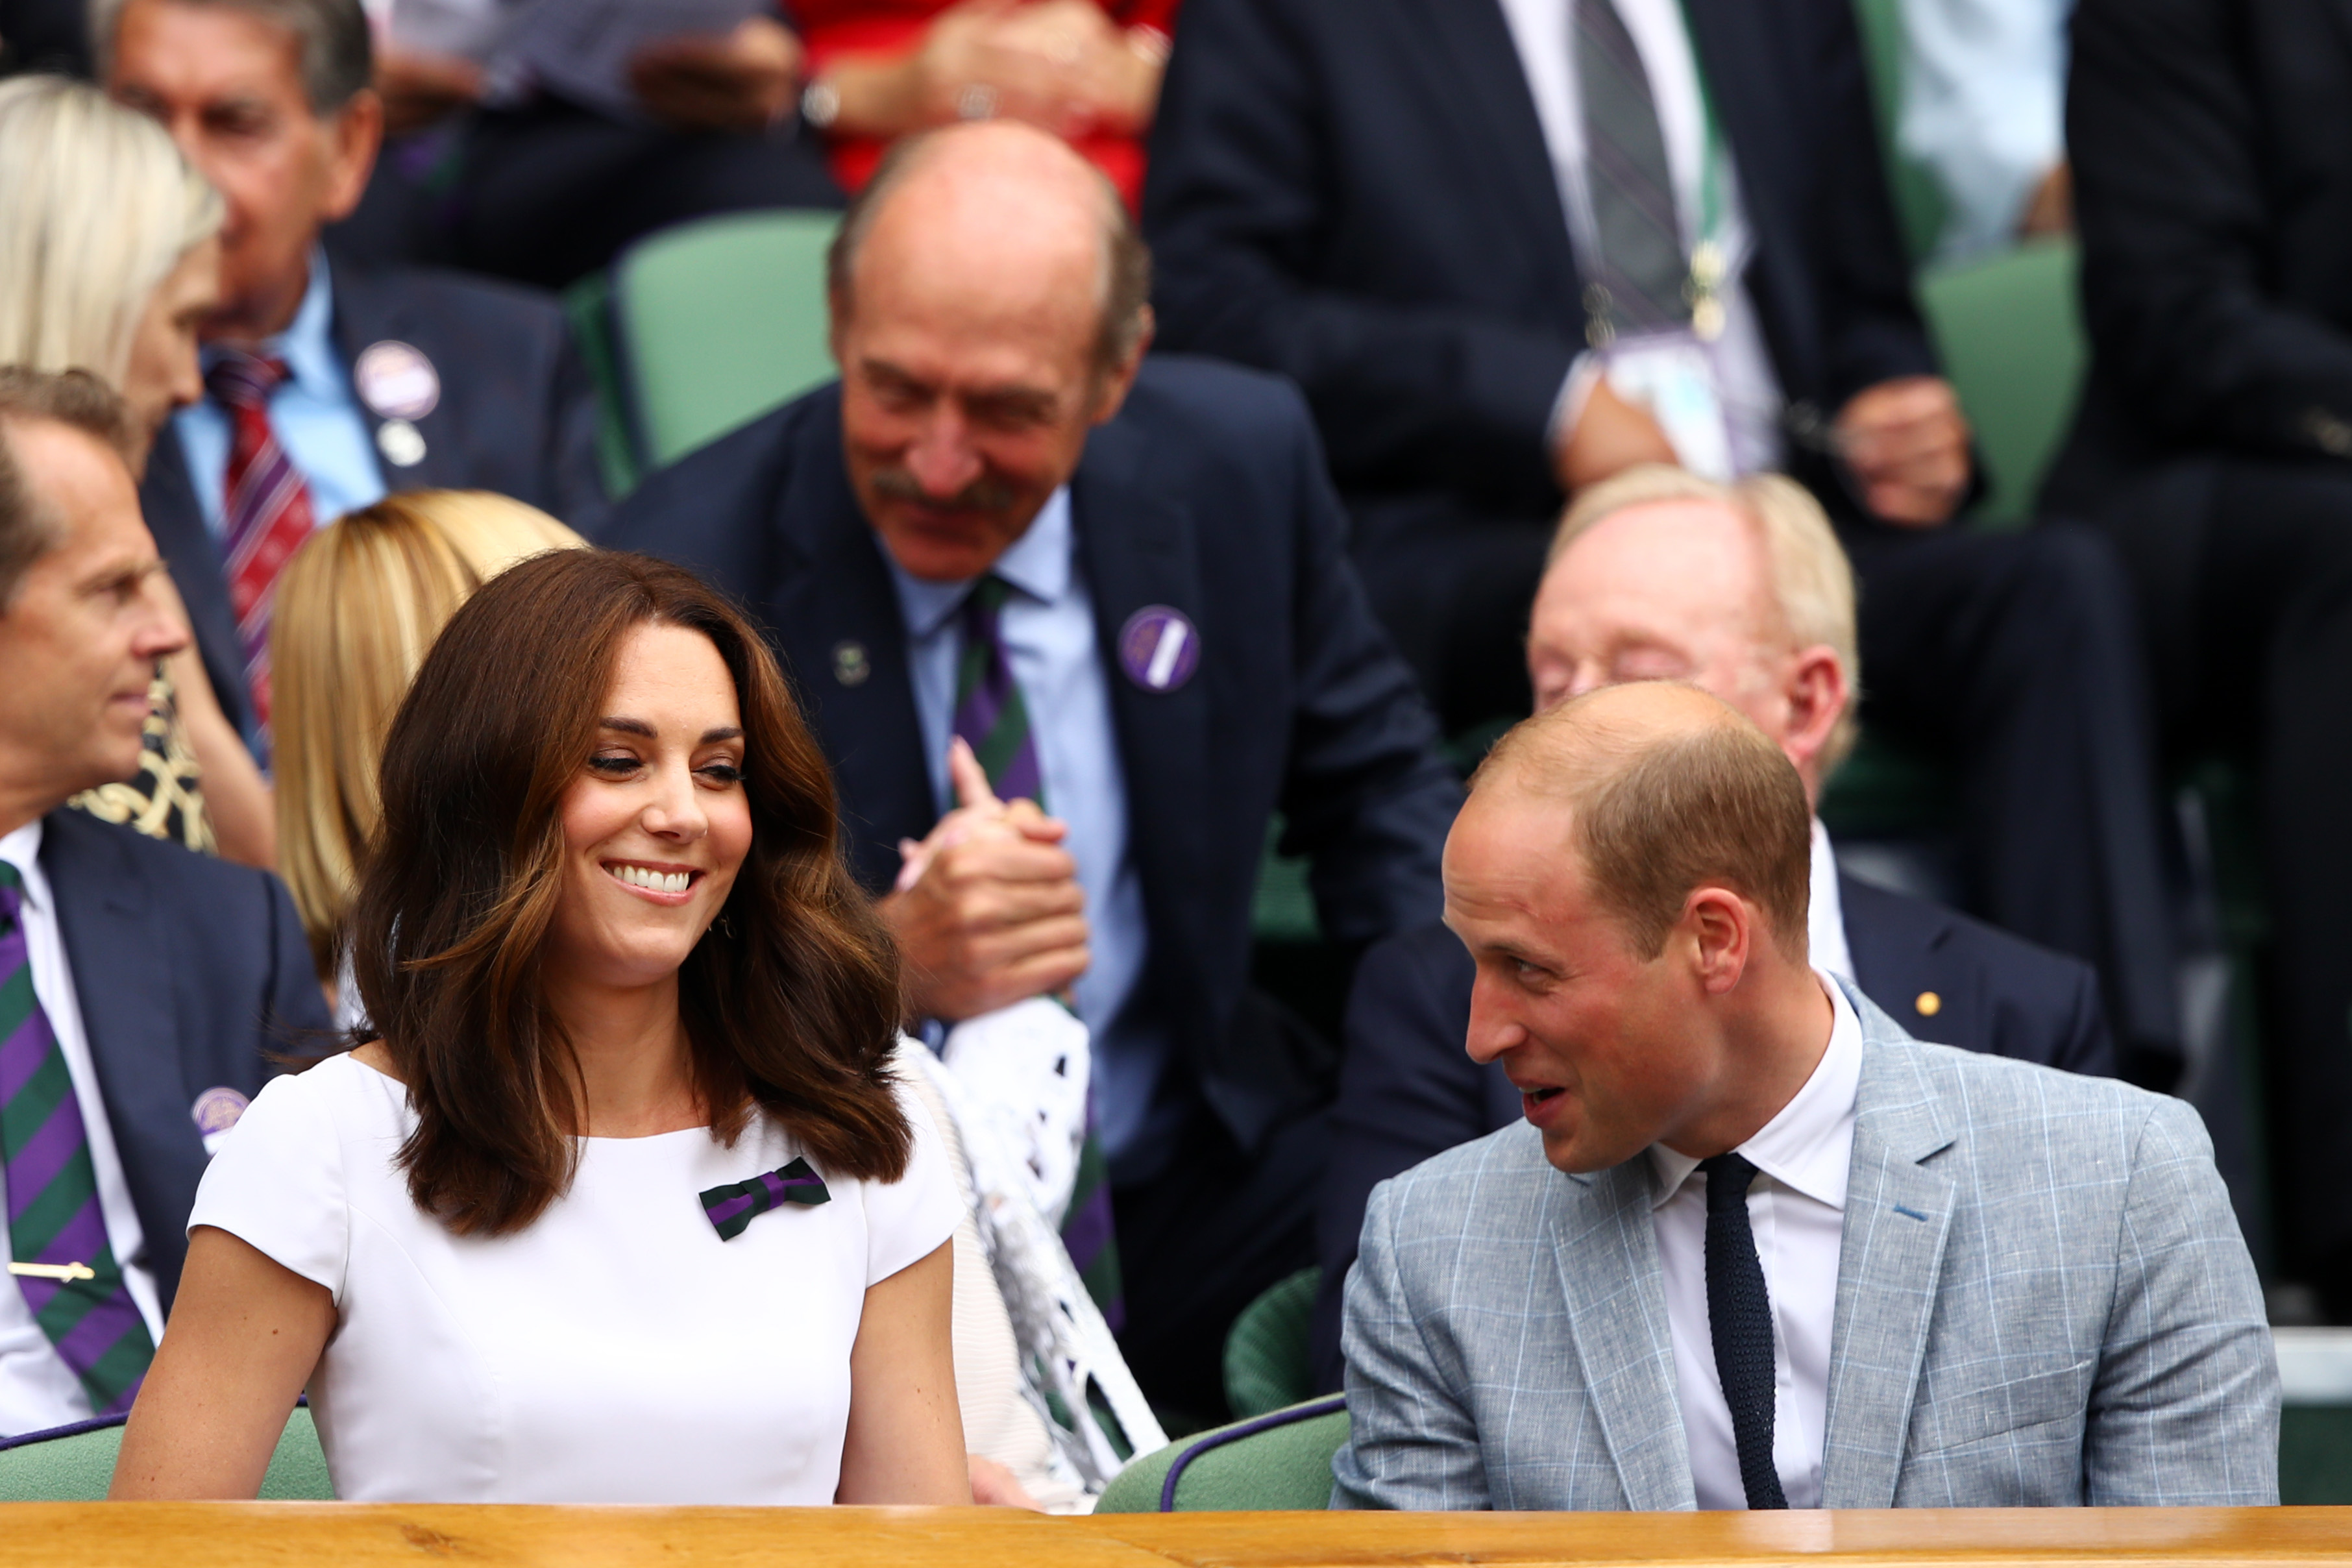 LONDON, ENGLAND - JULY 16: Prince William, Duke of Cambridge and Catherine, Duchess of Cambridge look on from the centre court royal box prior to the Gentlemen's Singles final between Roger Federer of Switzerland and Marin Cilic of Croatia on day thirteen of the Wimbledon Lawn Tennis Championships at the All England Lawn Tennis and Croquet Club at Wimbledon on July 16, 2017 in London, England. (Photo by Clive Brunskill/Getty Images)